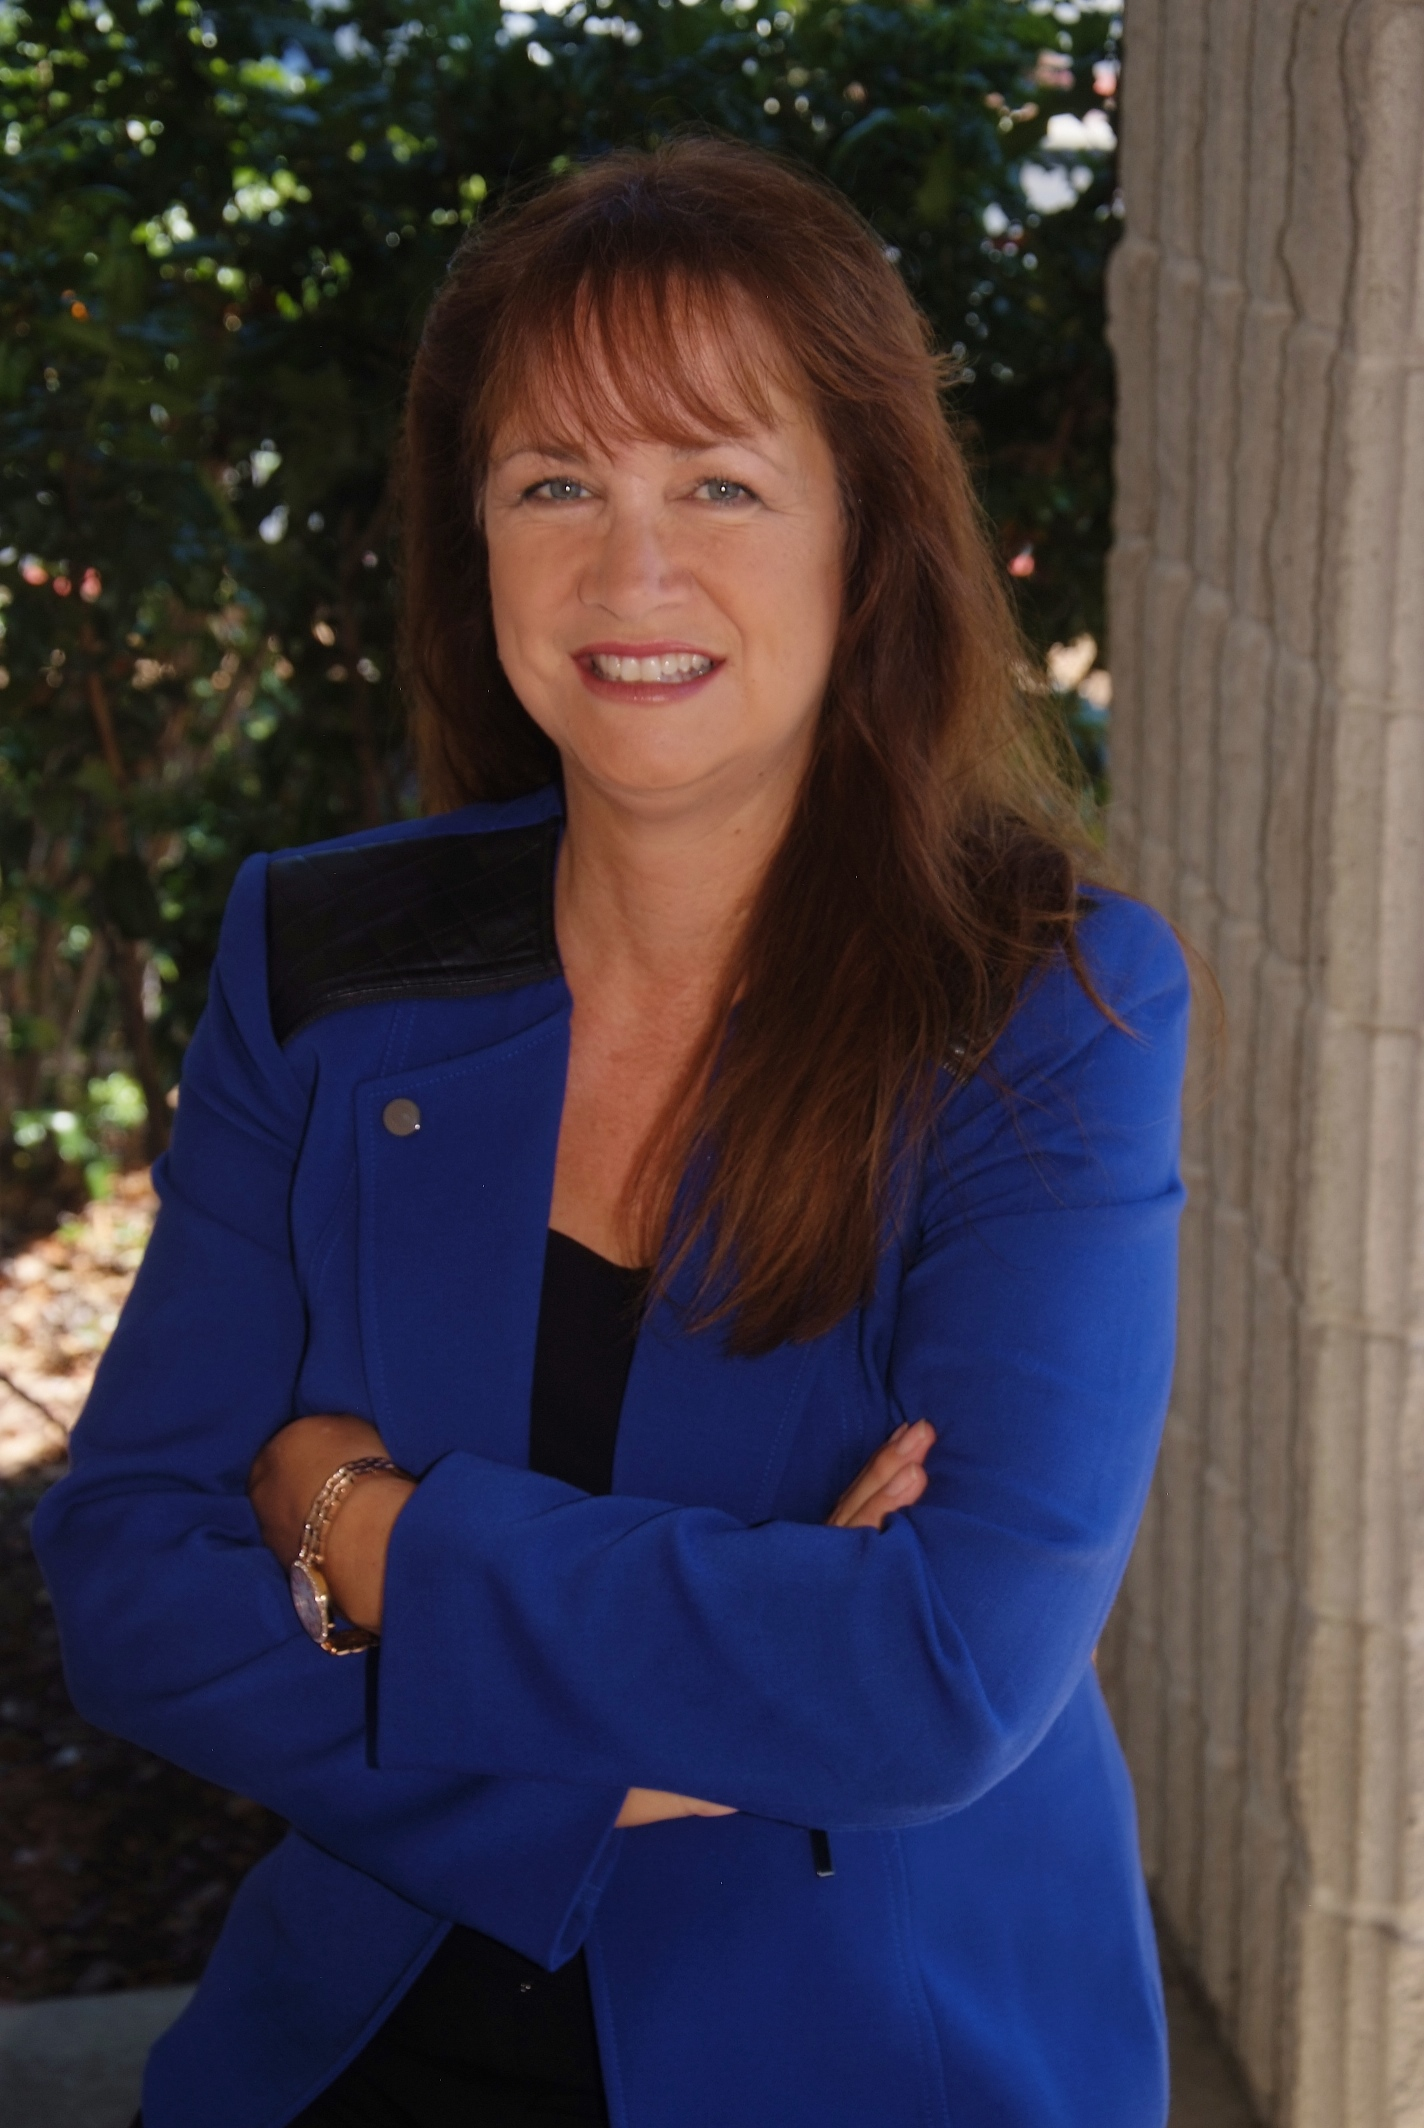 Linda Zimmer Real Estate Agent Morgan Hill Ca